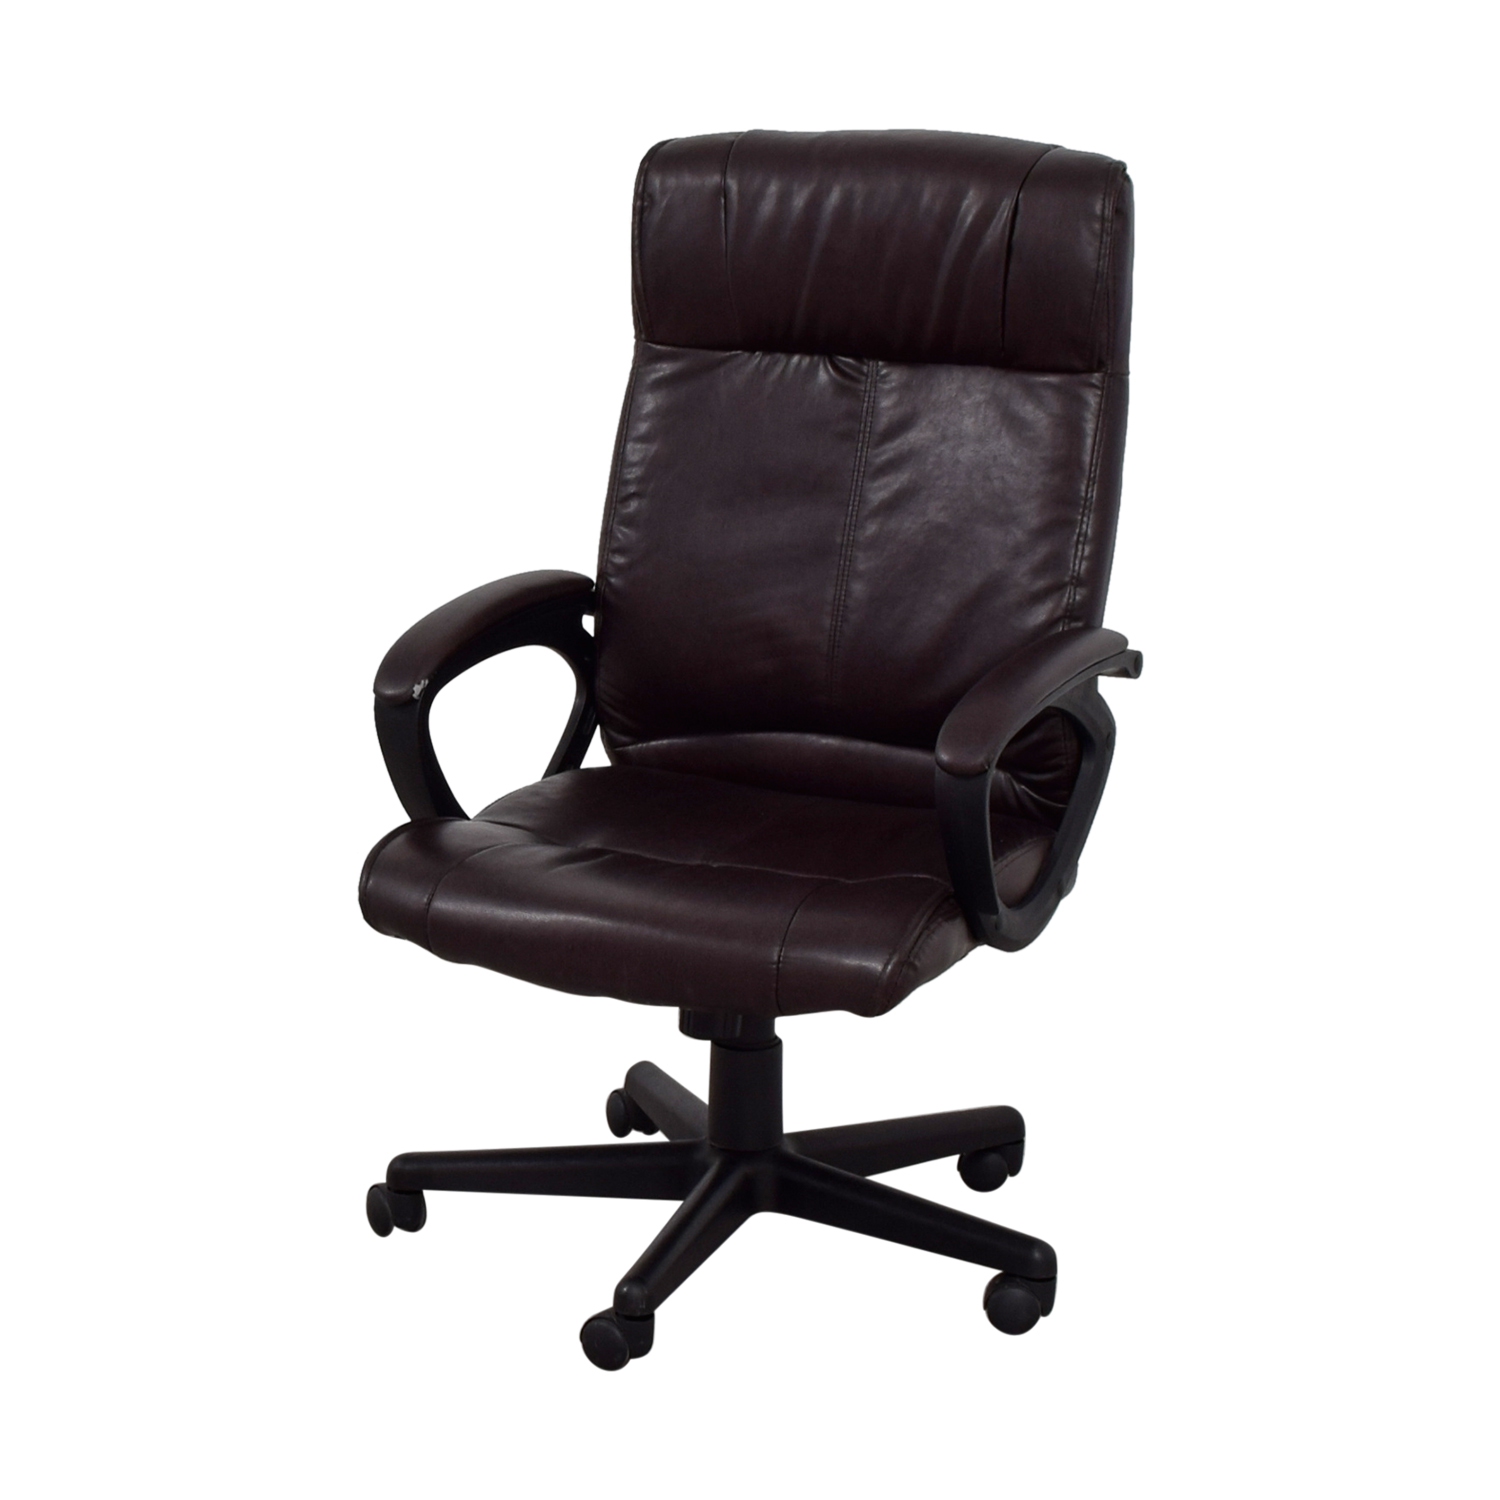 82 OFF  Brown Leather Desk Chair  Chairs